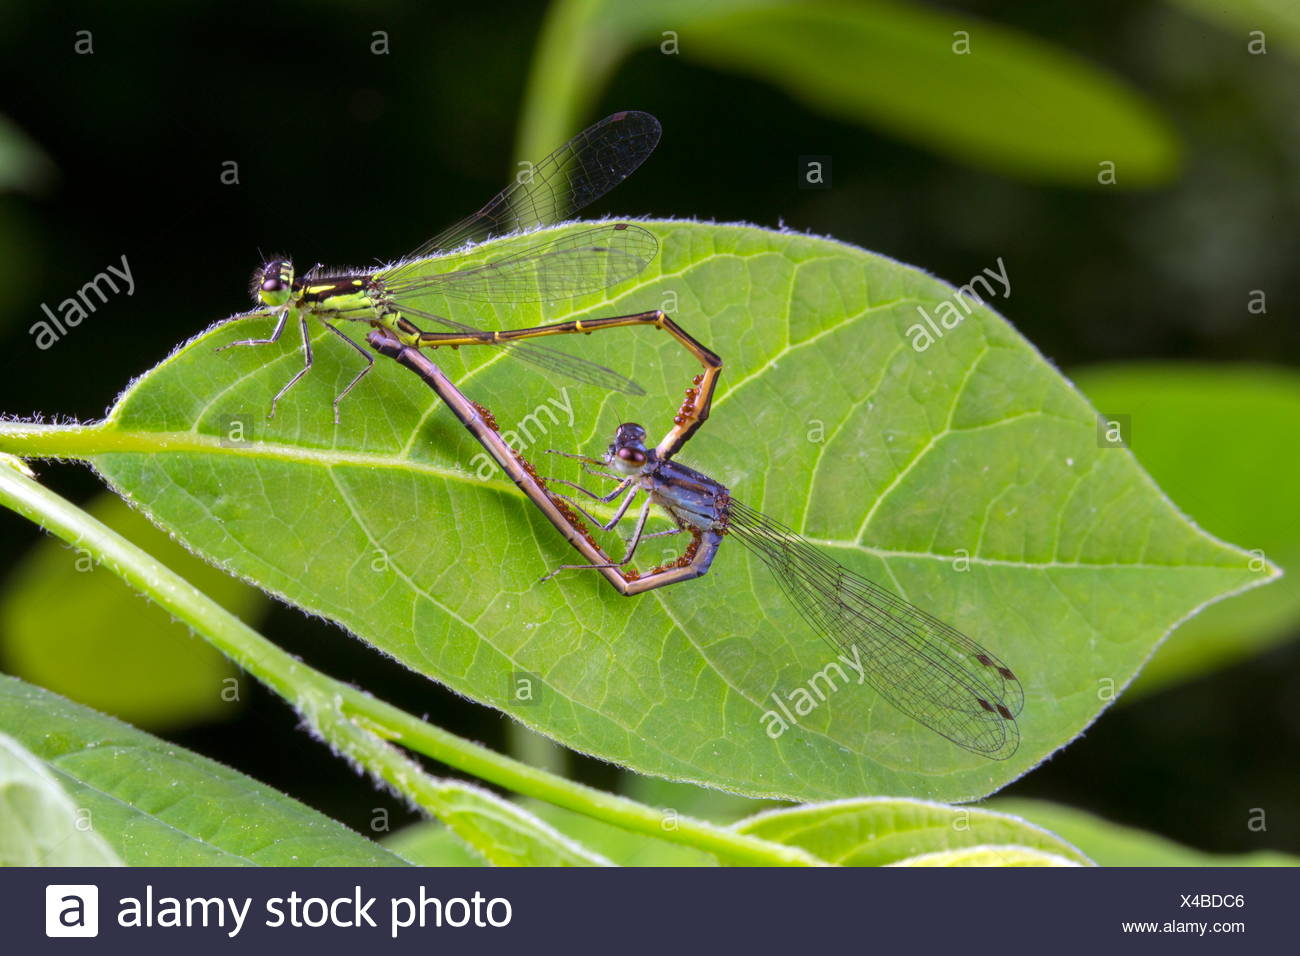 A mating pair of fragile forktail damselflies, Ishnura posita, with parasitic water mites on them. - Stock Image